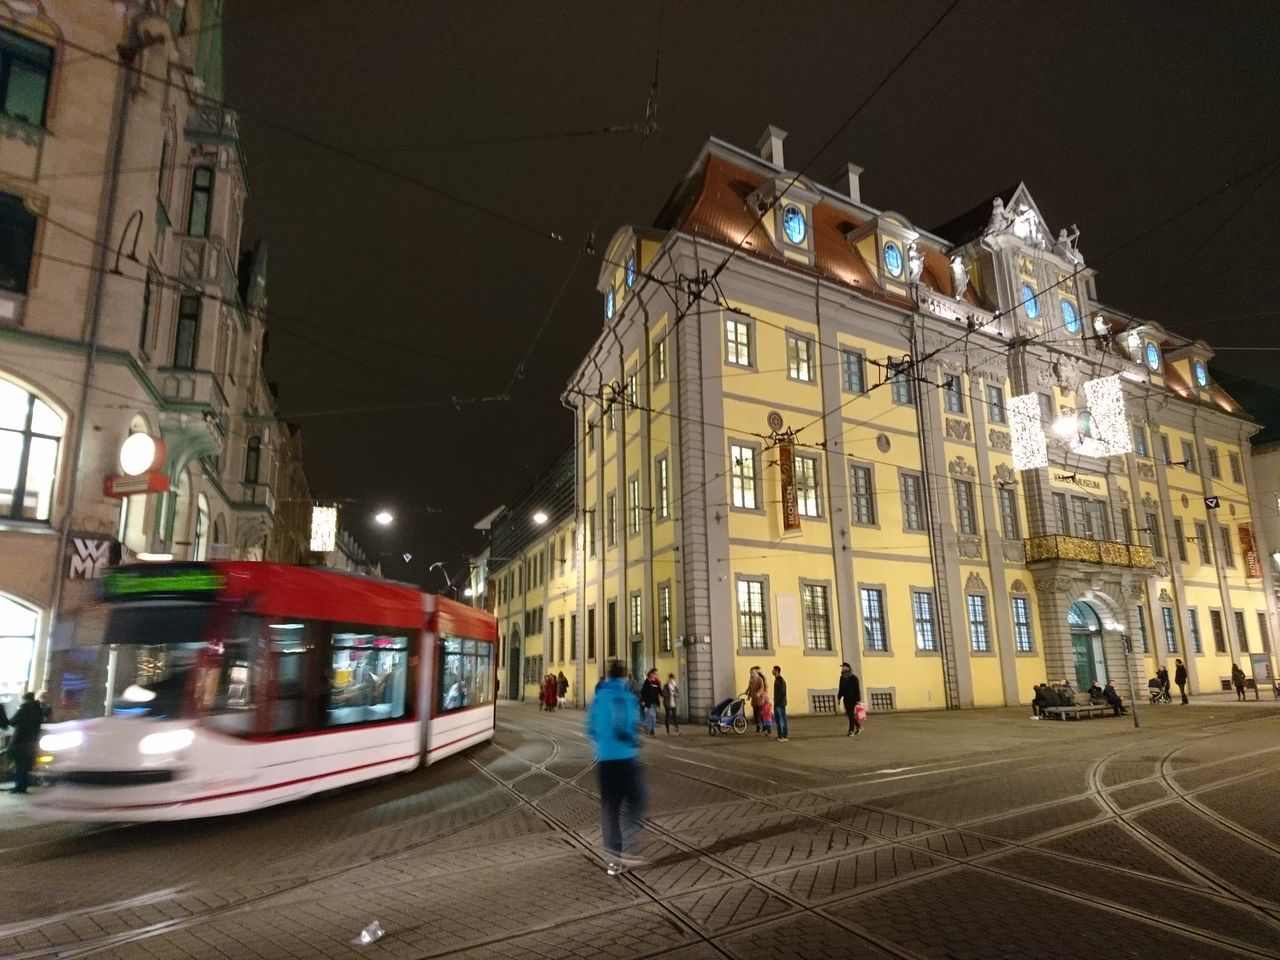 Illuminated Architecture Travel Destinations Tourism Night EyeEm Best Shots Sony Xperia Photography. Sony Xperia Zr 🇩🇪Germany IMography Xperiaphotography Streamzoofamily EyeEm Deutschland Outdoors Reflection EyeEm Best Shots - The Streets Light Effect Tram Welcome To Black